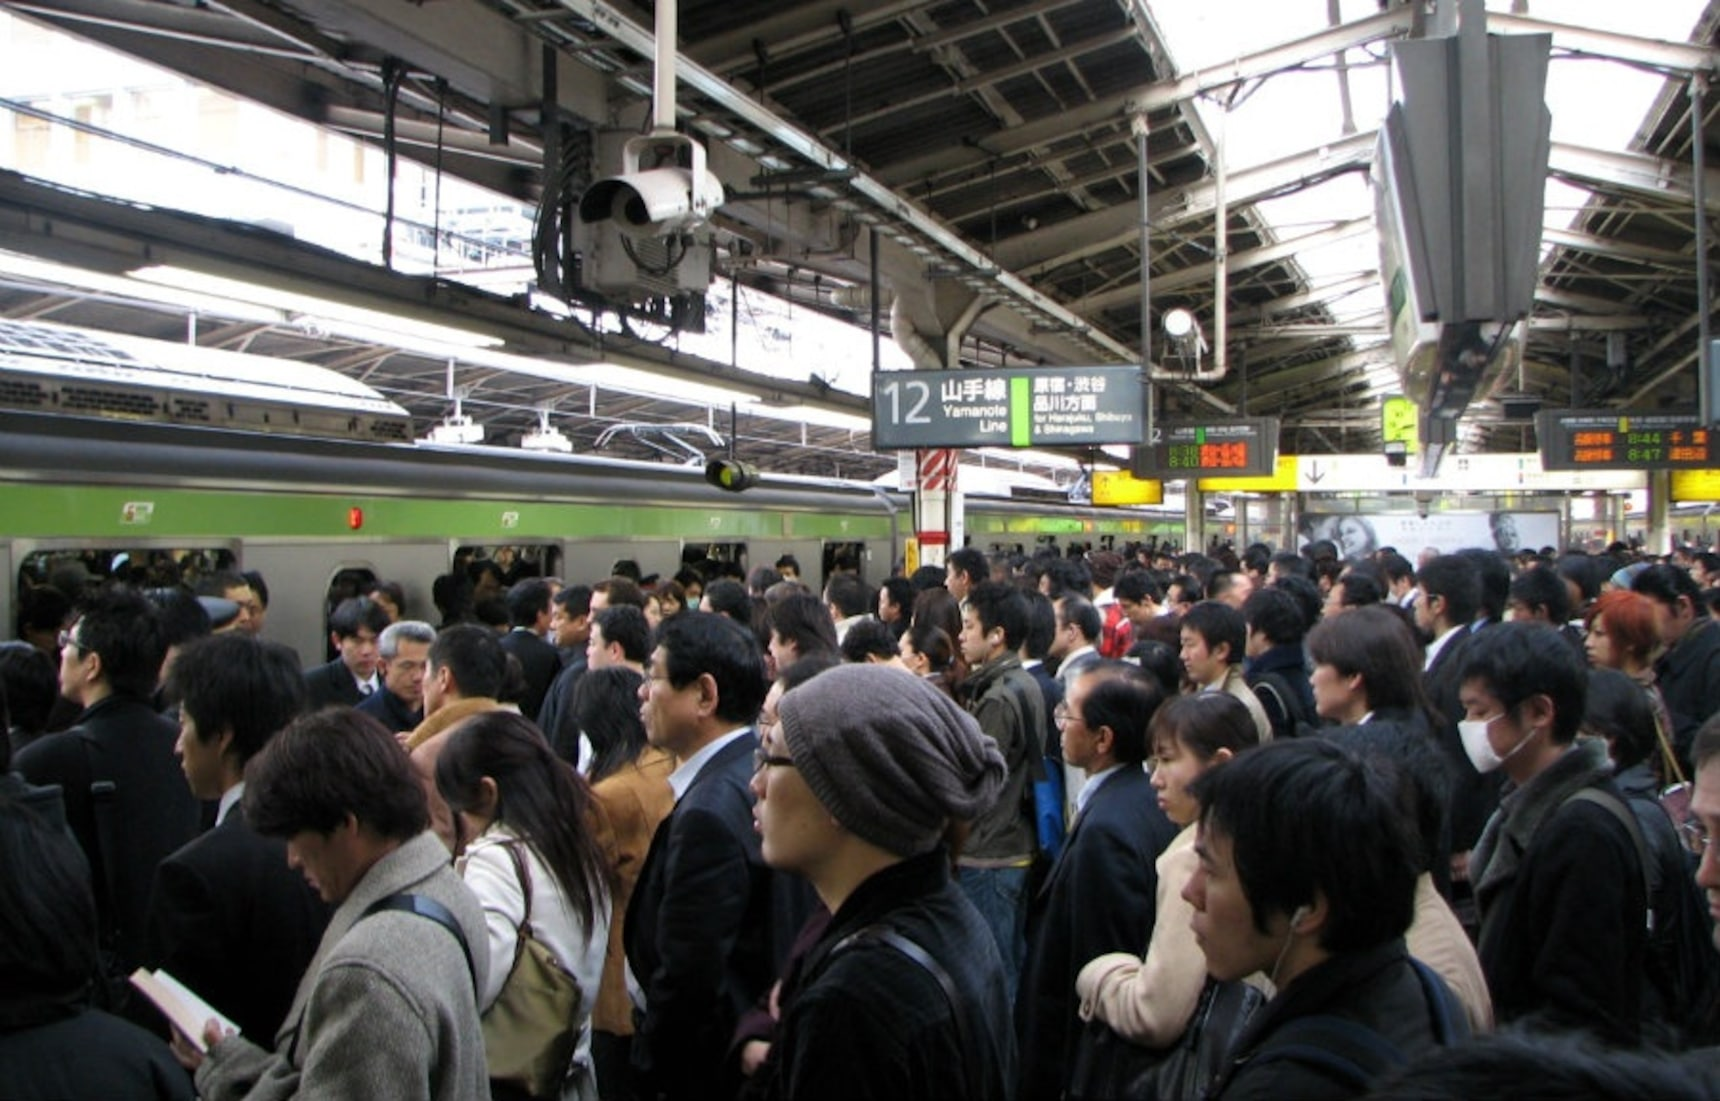 9 Tips for Surviving Crowded Trains